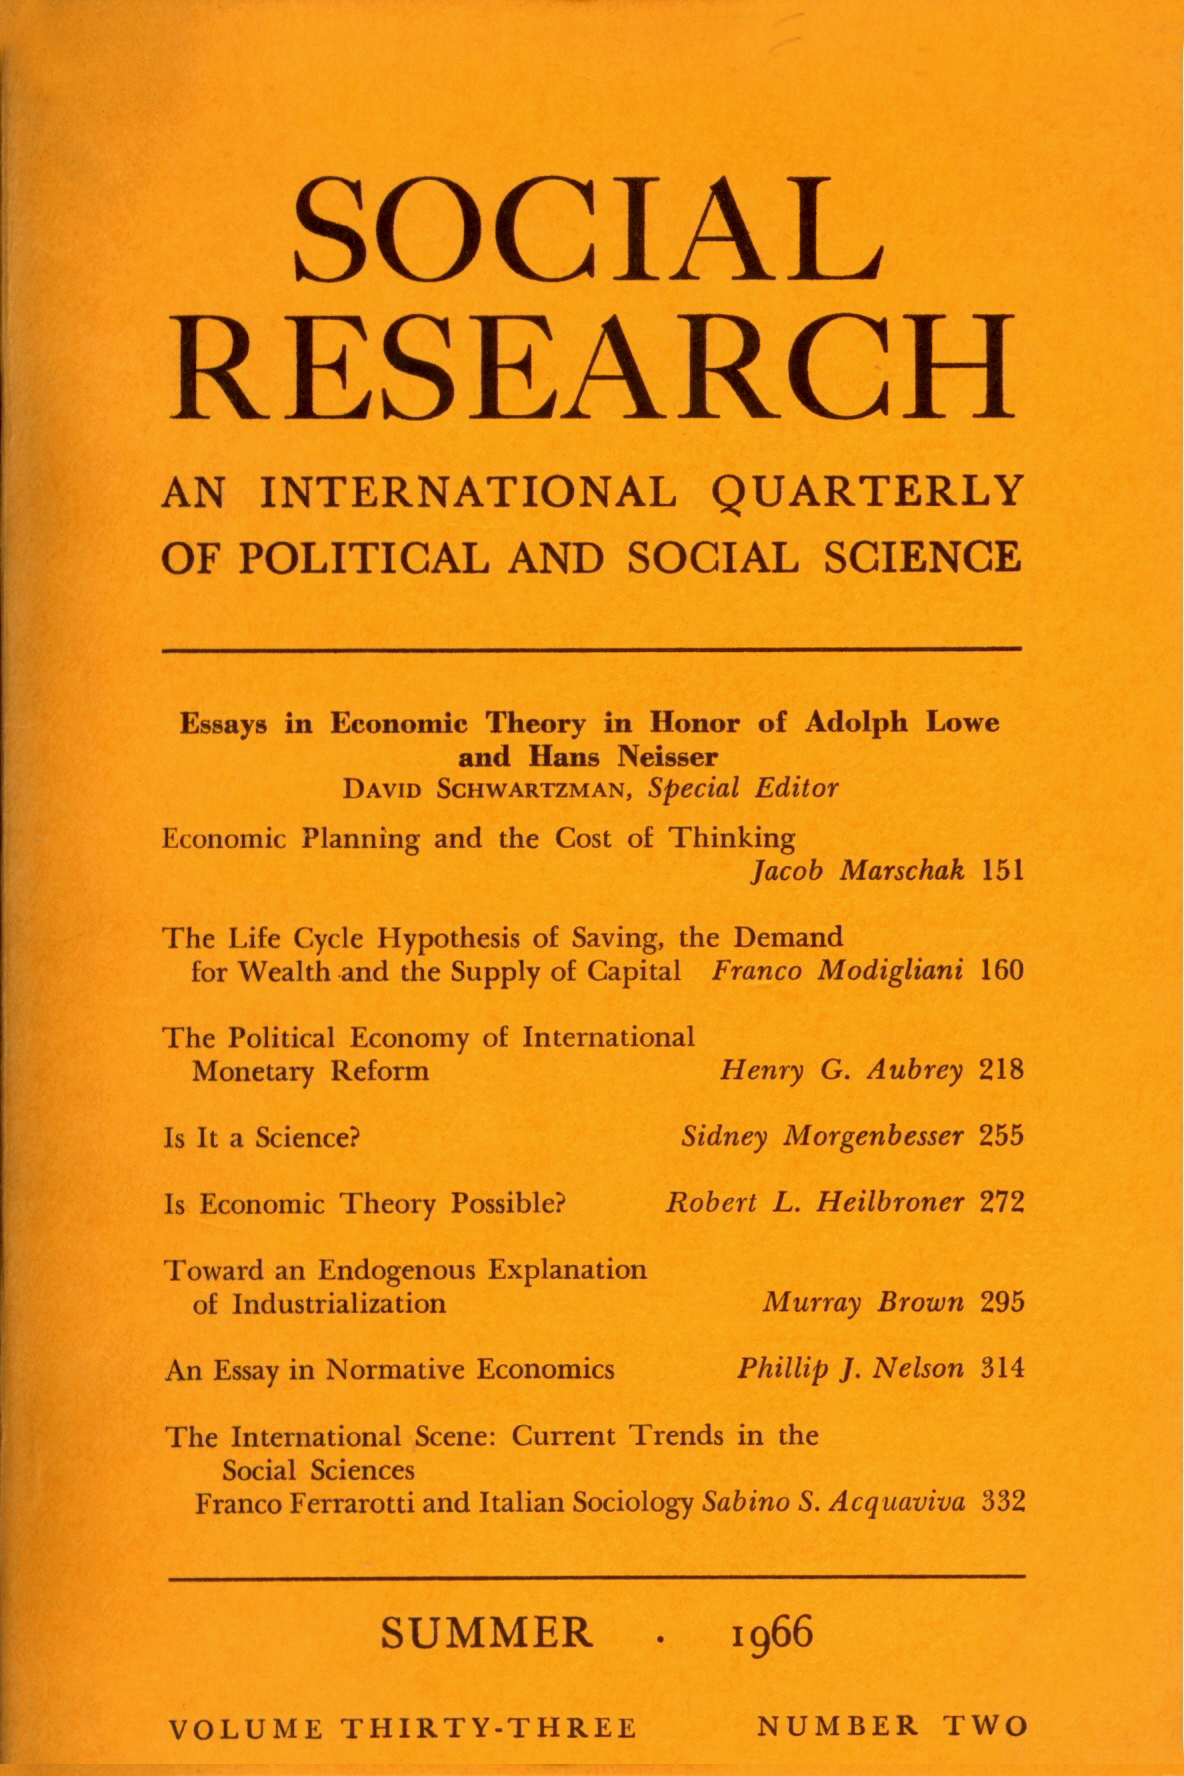 Essays In Economic Theory In Honor Of Adolph Lowe And Hans Neisser  Essays In Economic Theory In Honor Of Adolph Lowe And Hans Neisser  Vol   No  Summer   Social Research An International Quarterly